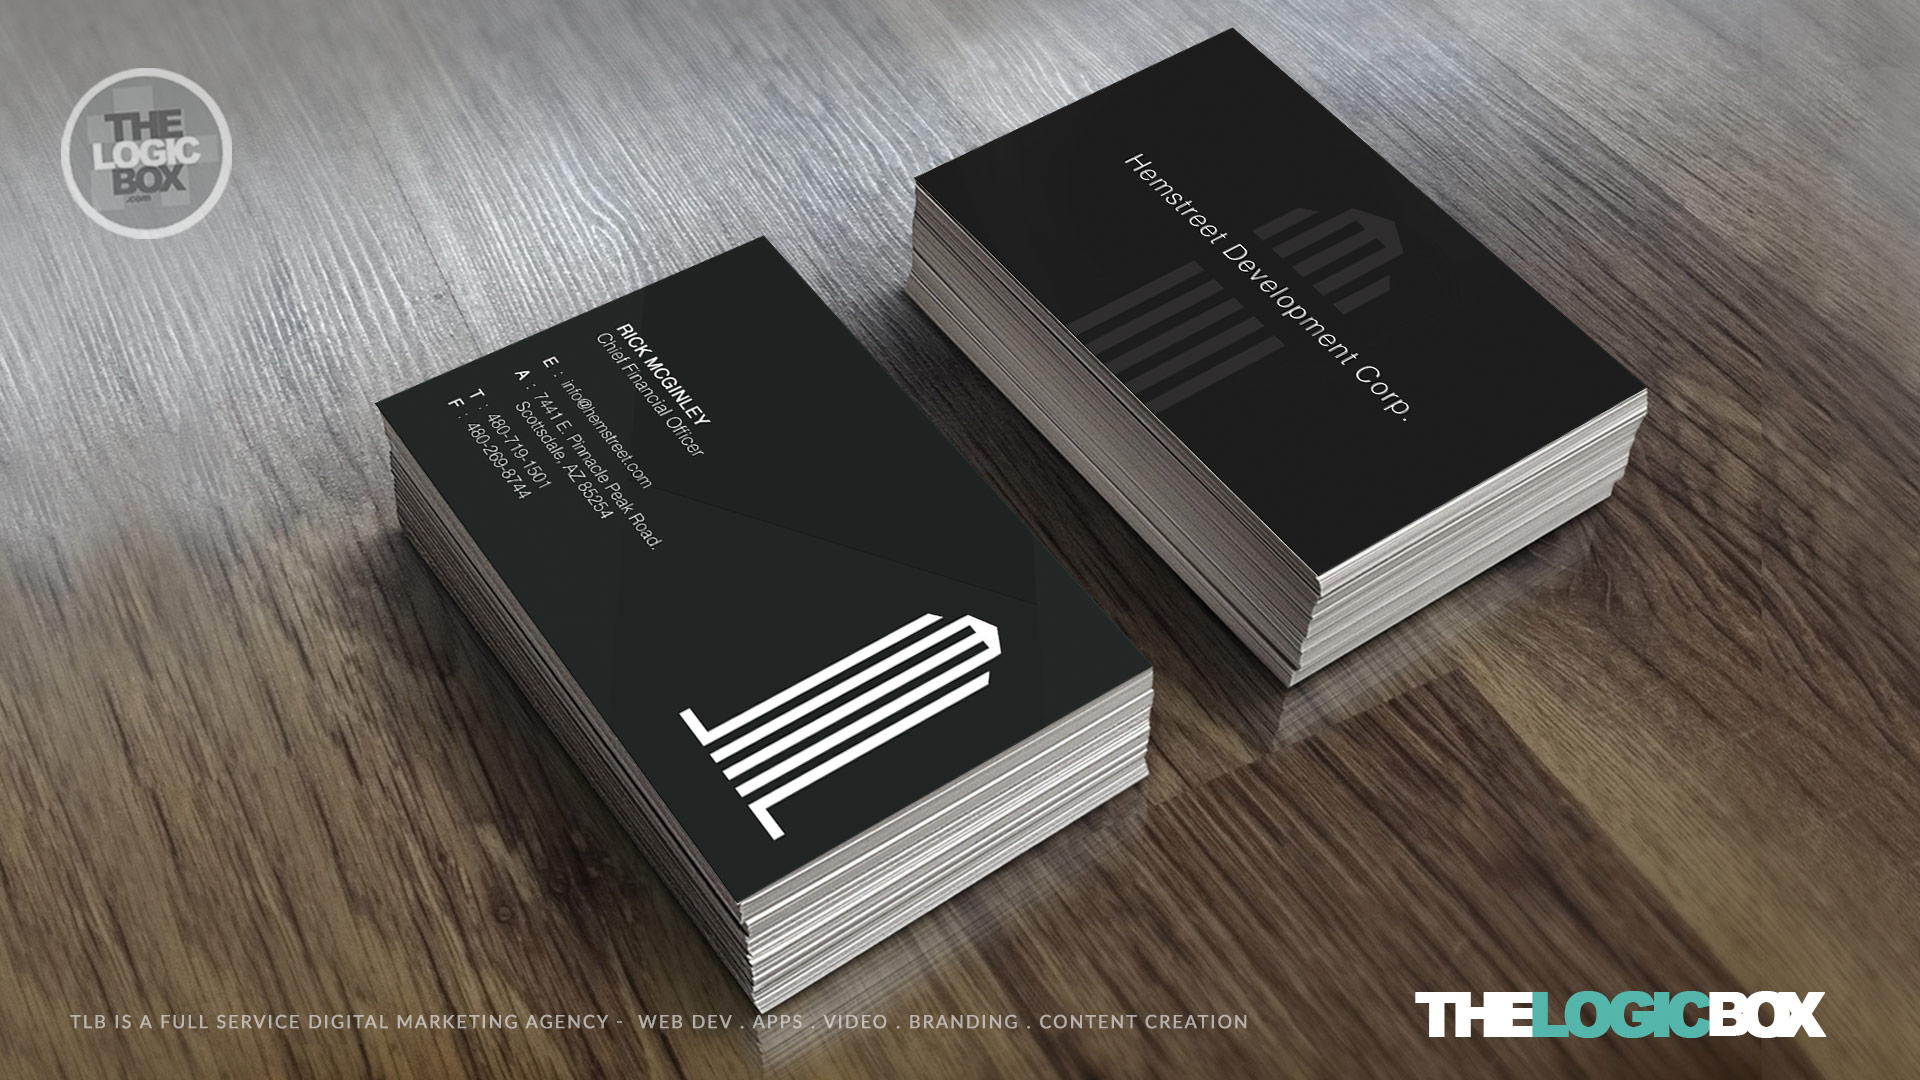 Digital Marketing Business Card Ideas - Best Market 2017